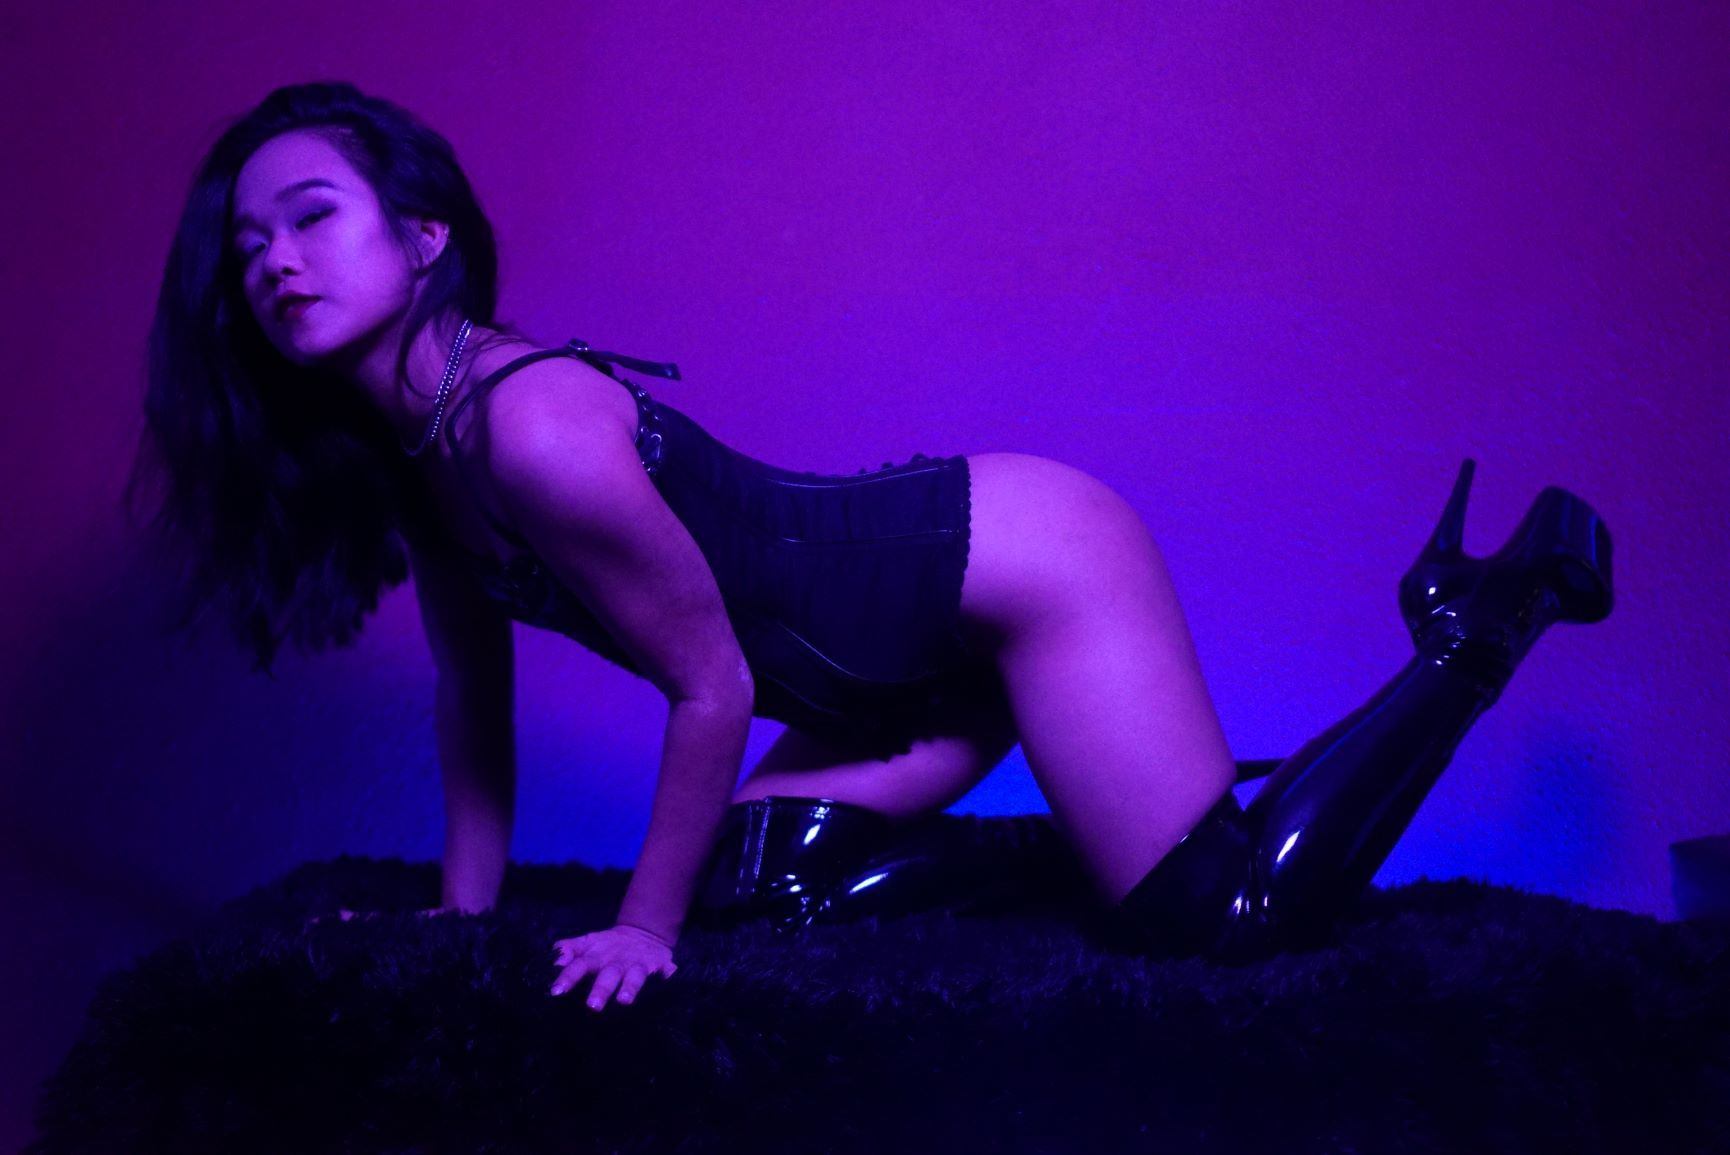 Asian New York prodomme Empress Wu in a leather corset and vinyl boots, waiting to pounce on you.